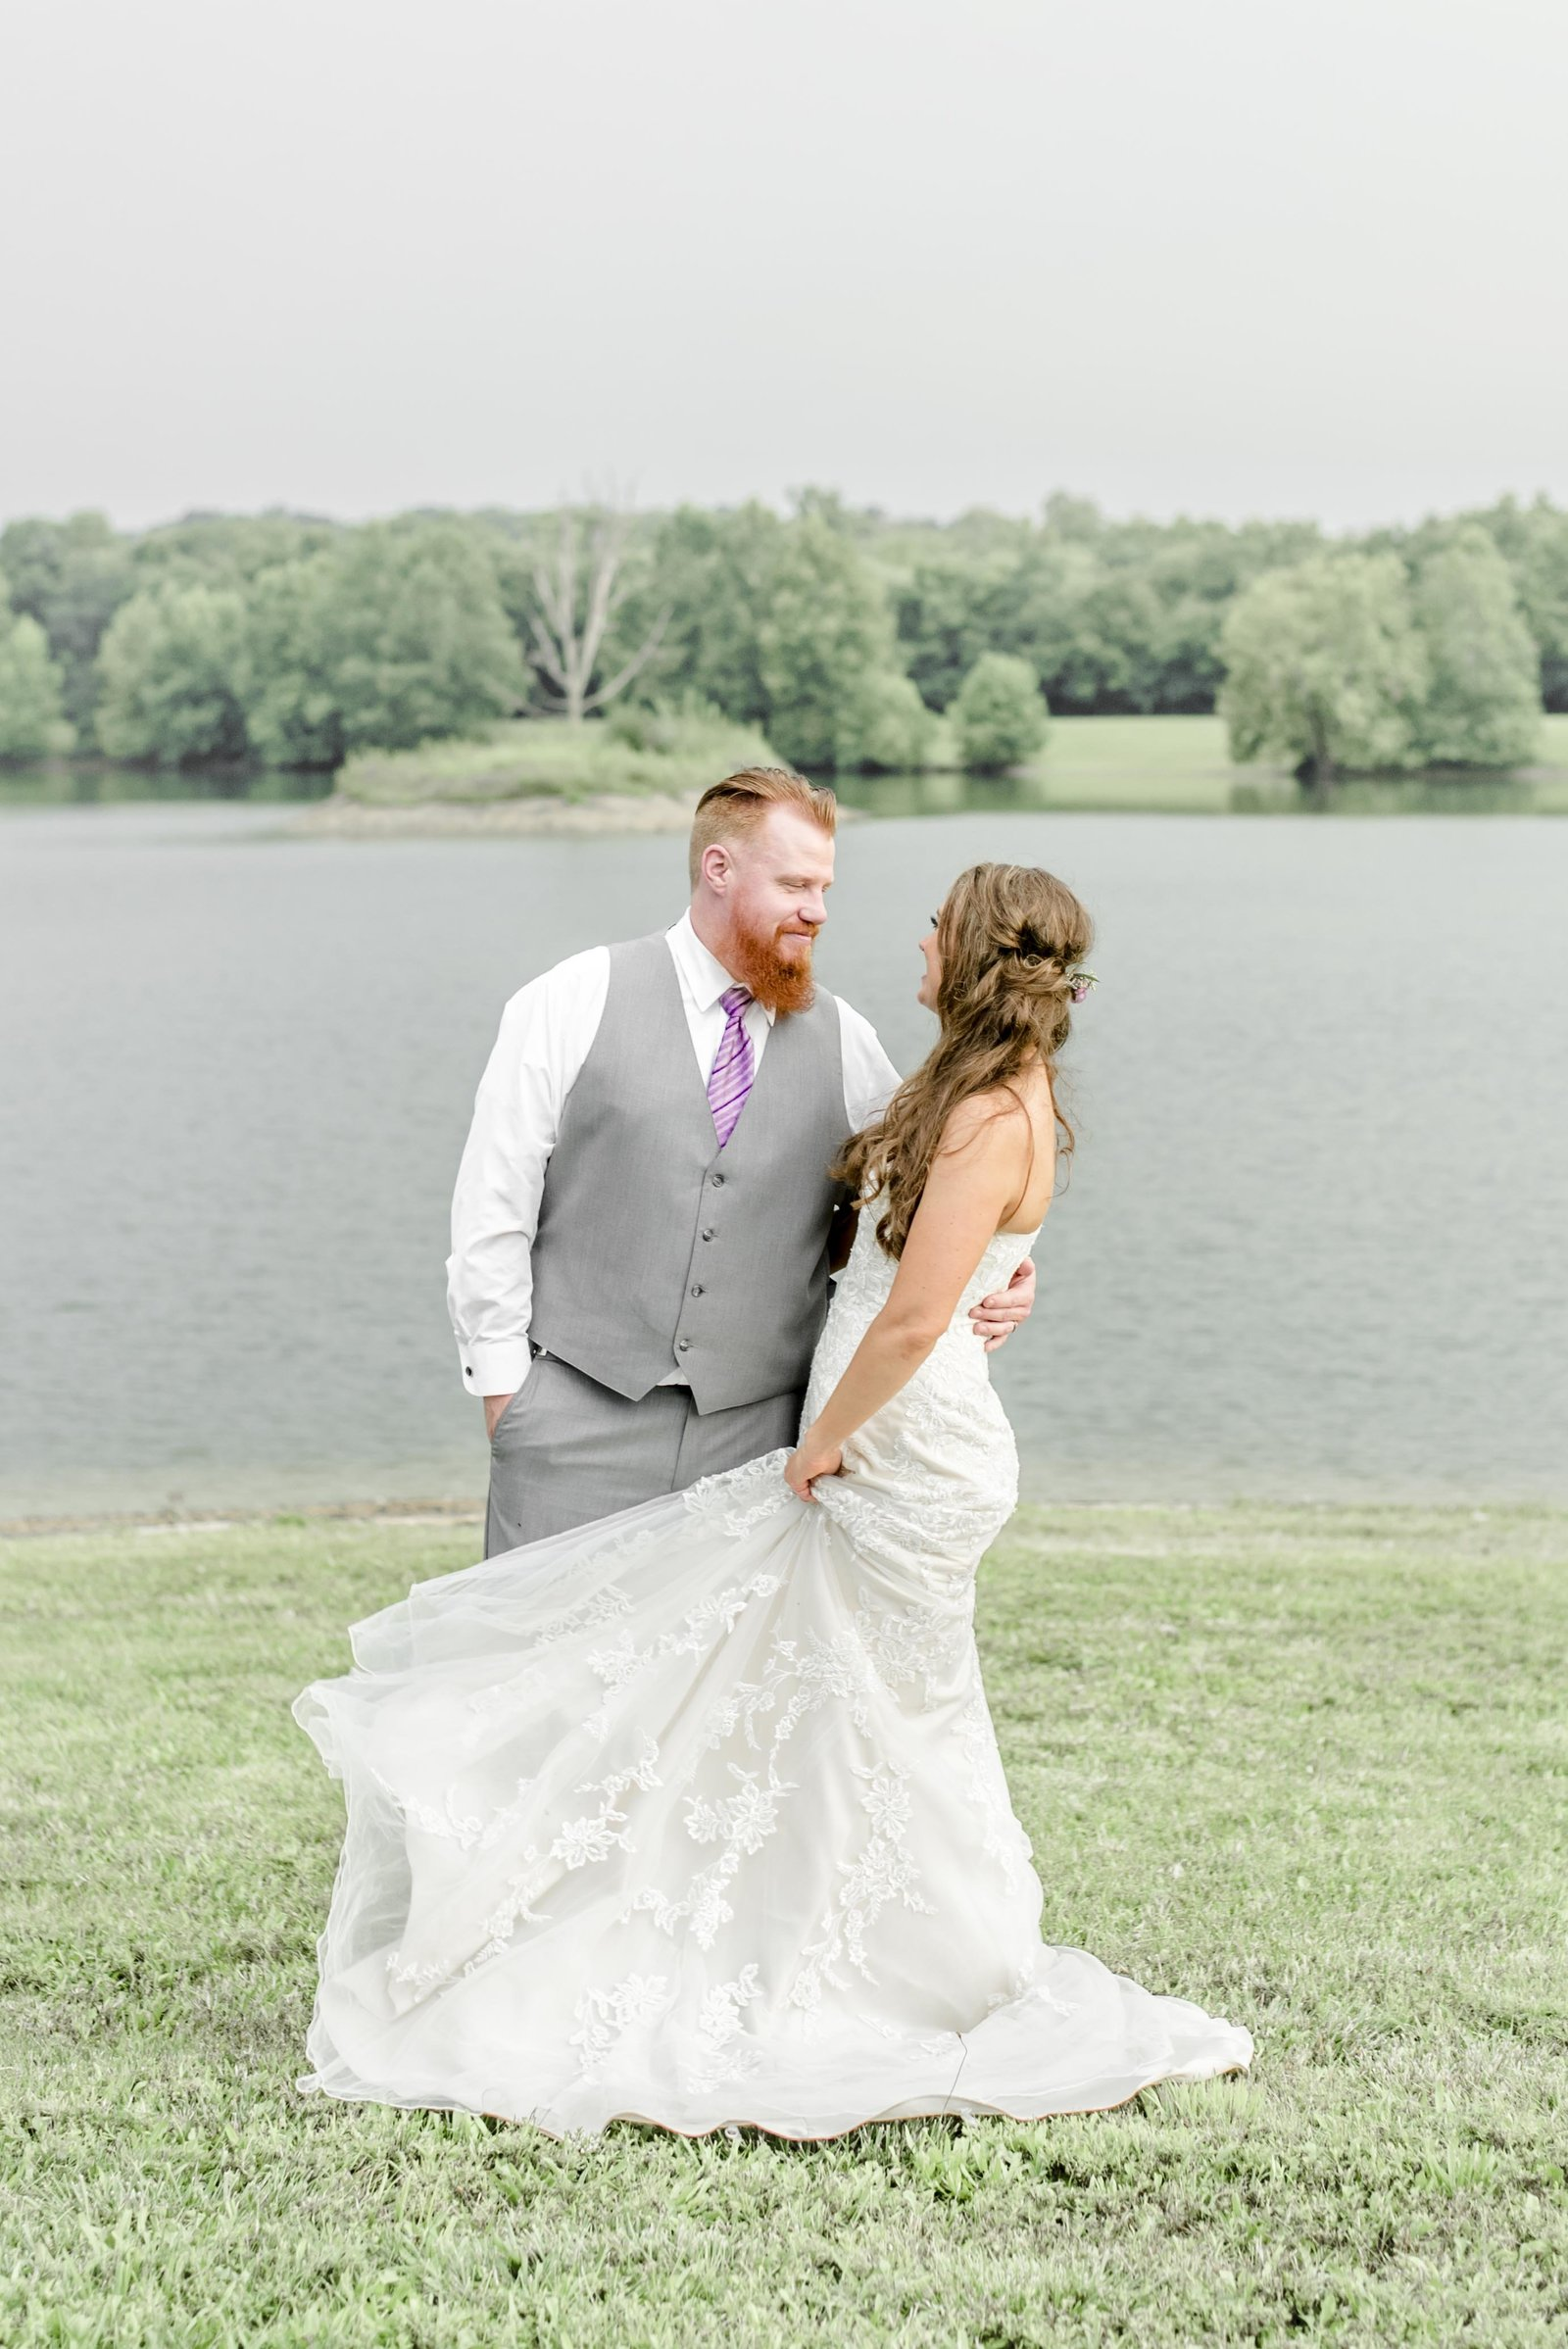 Cassidy_Alane_Photography-Jessica&EvanJonesWedding-Lake_Lyndsay-Ohio_Wedding_Photographer-02